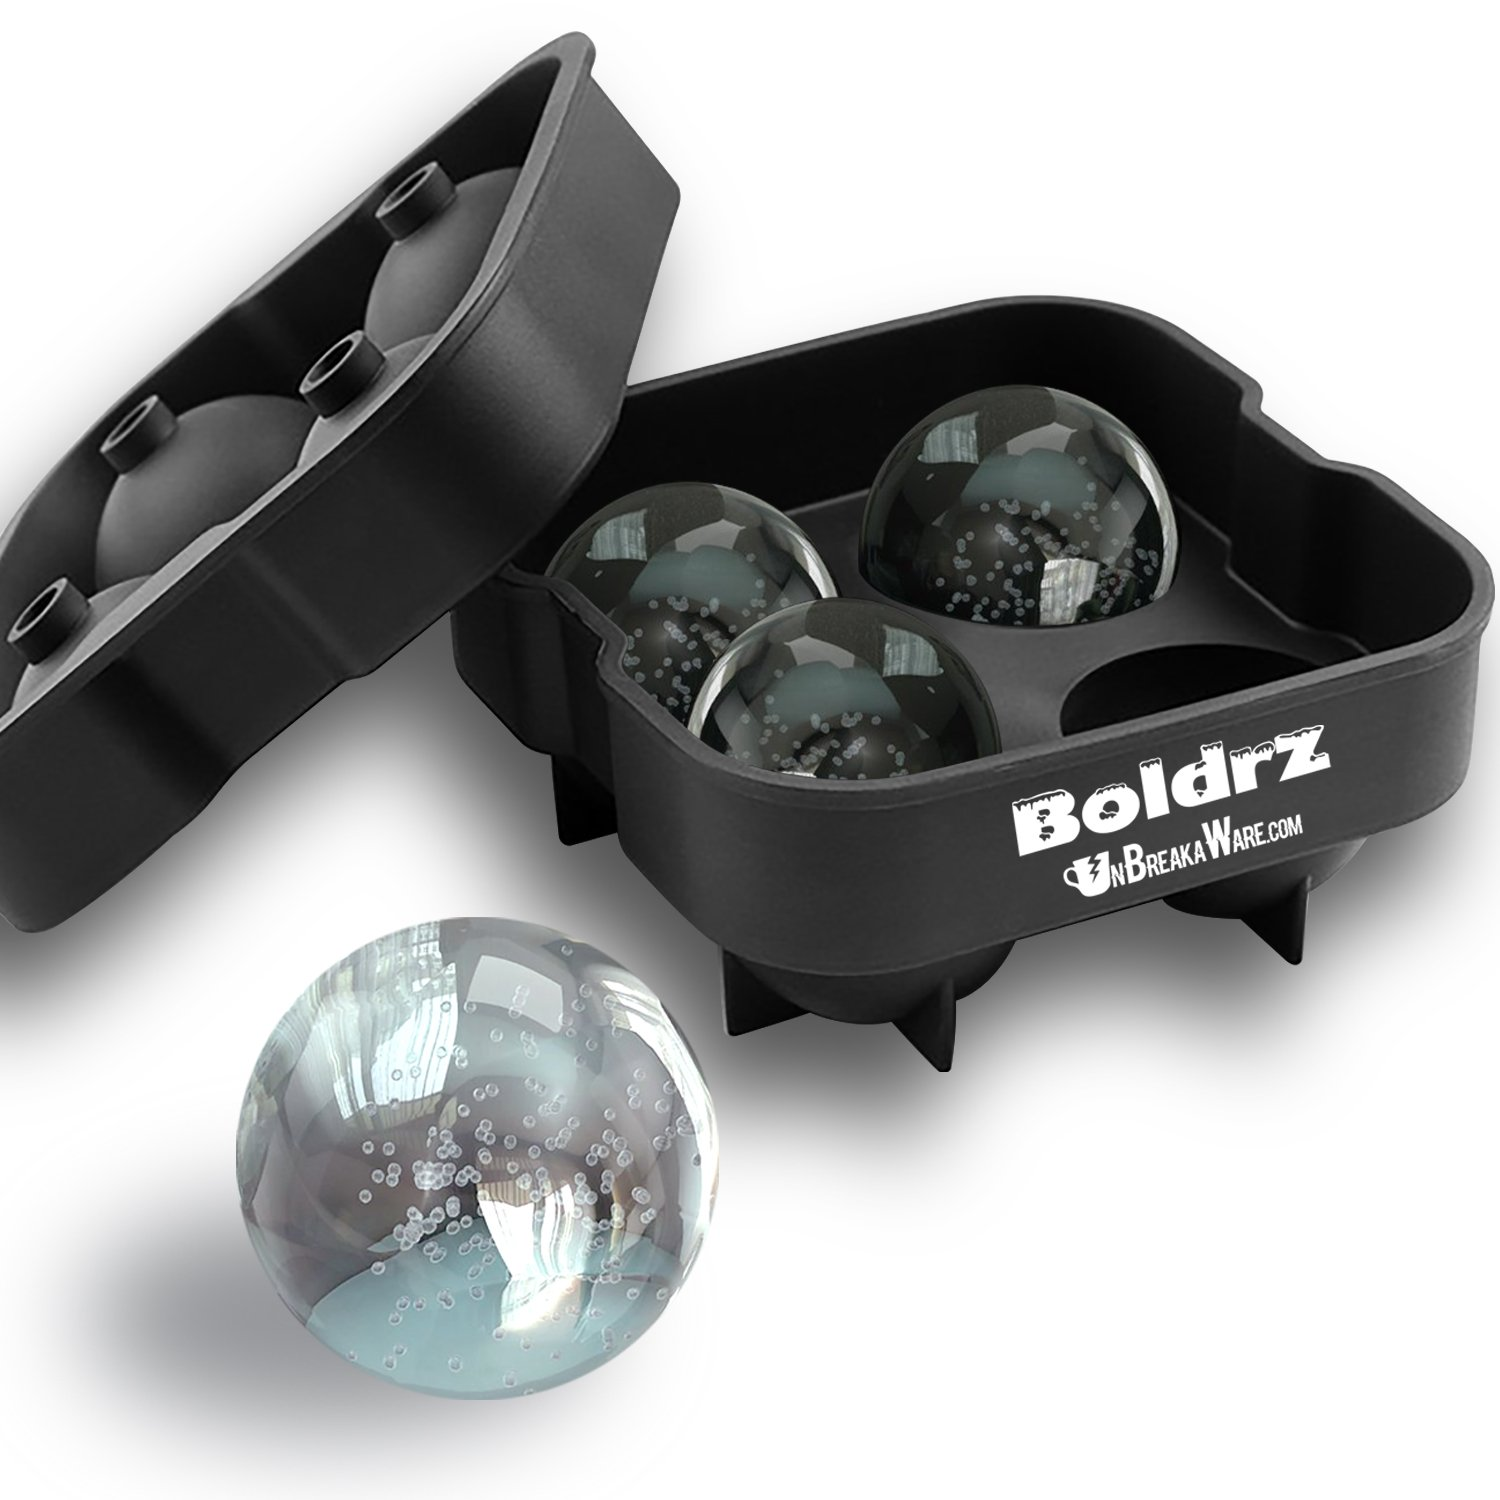 Boldrz Ice Ball Maker Mold - Black Flexible Silicone Tray - Molds 4 X 4.5cm Round Ice Spheres (1 Pack) UnBreakaWare Boldrz V1 4.5